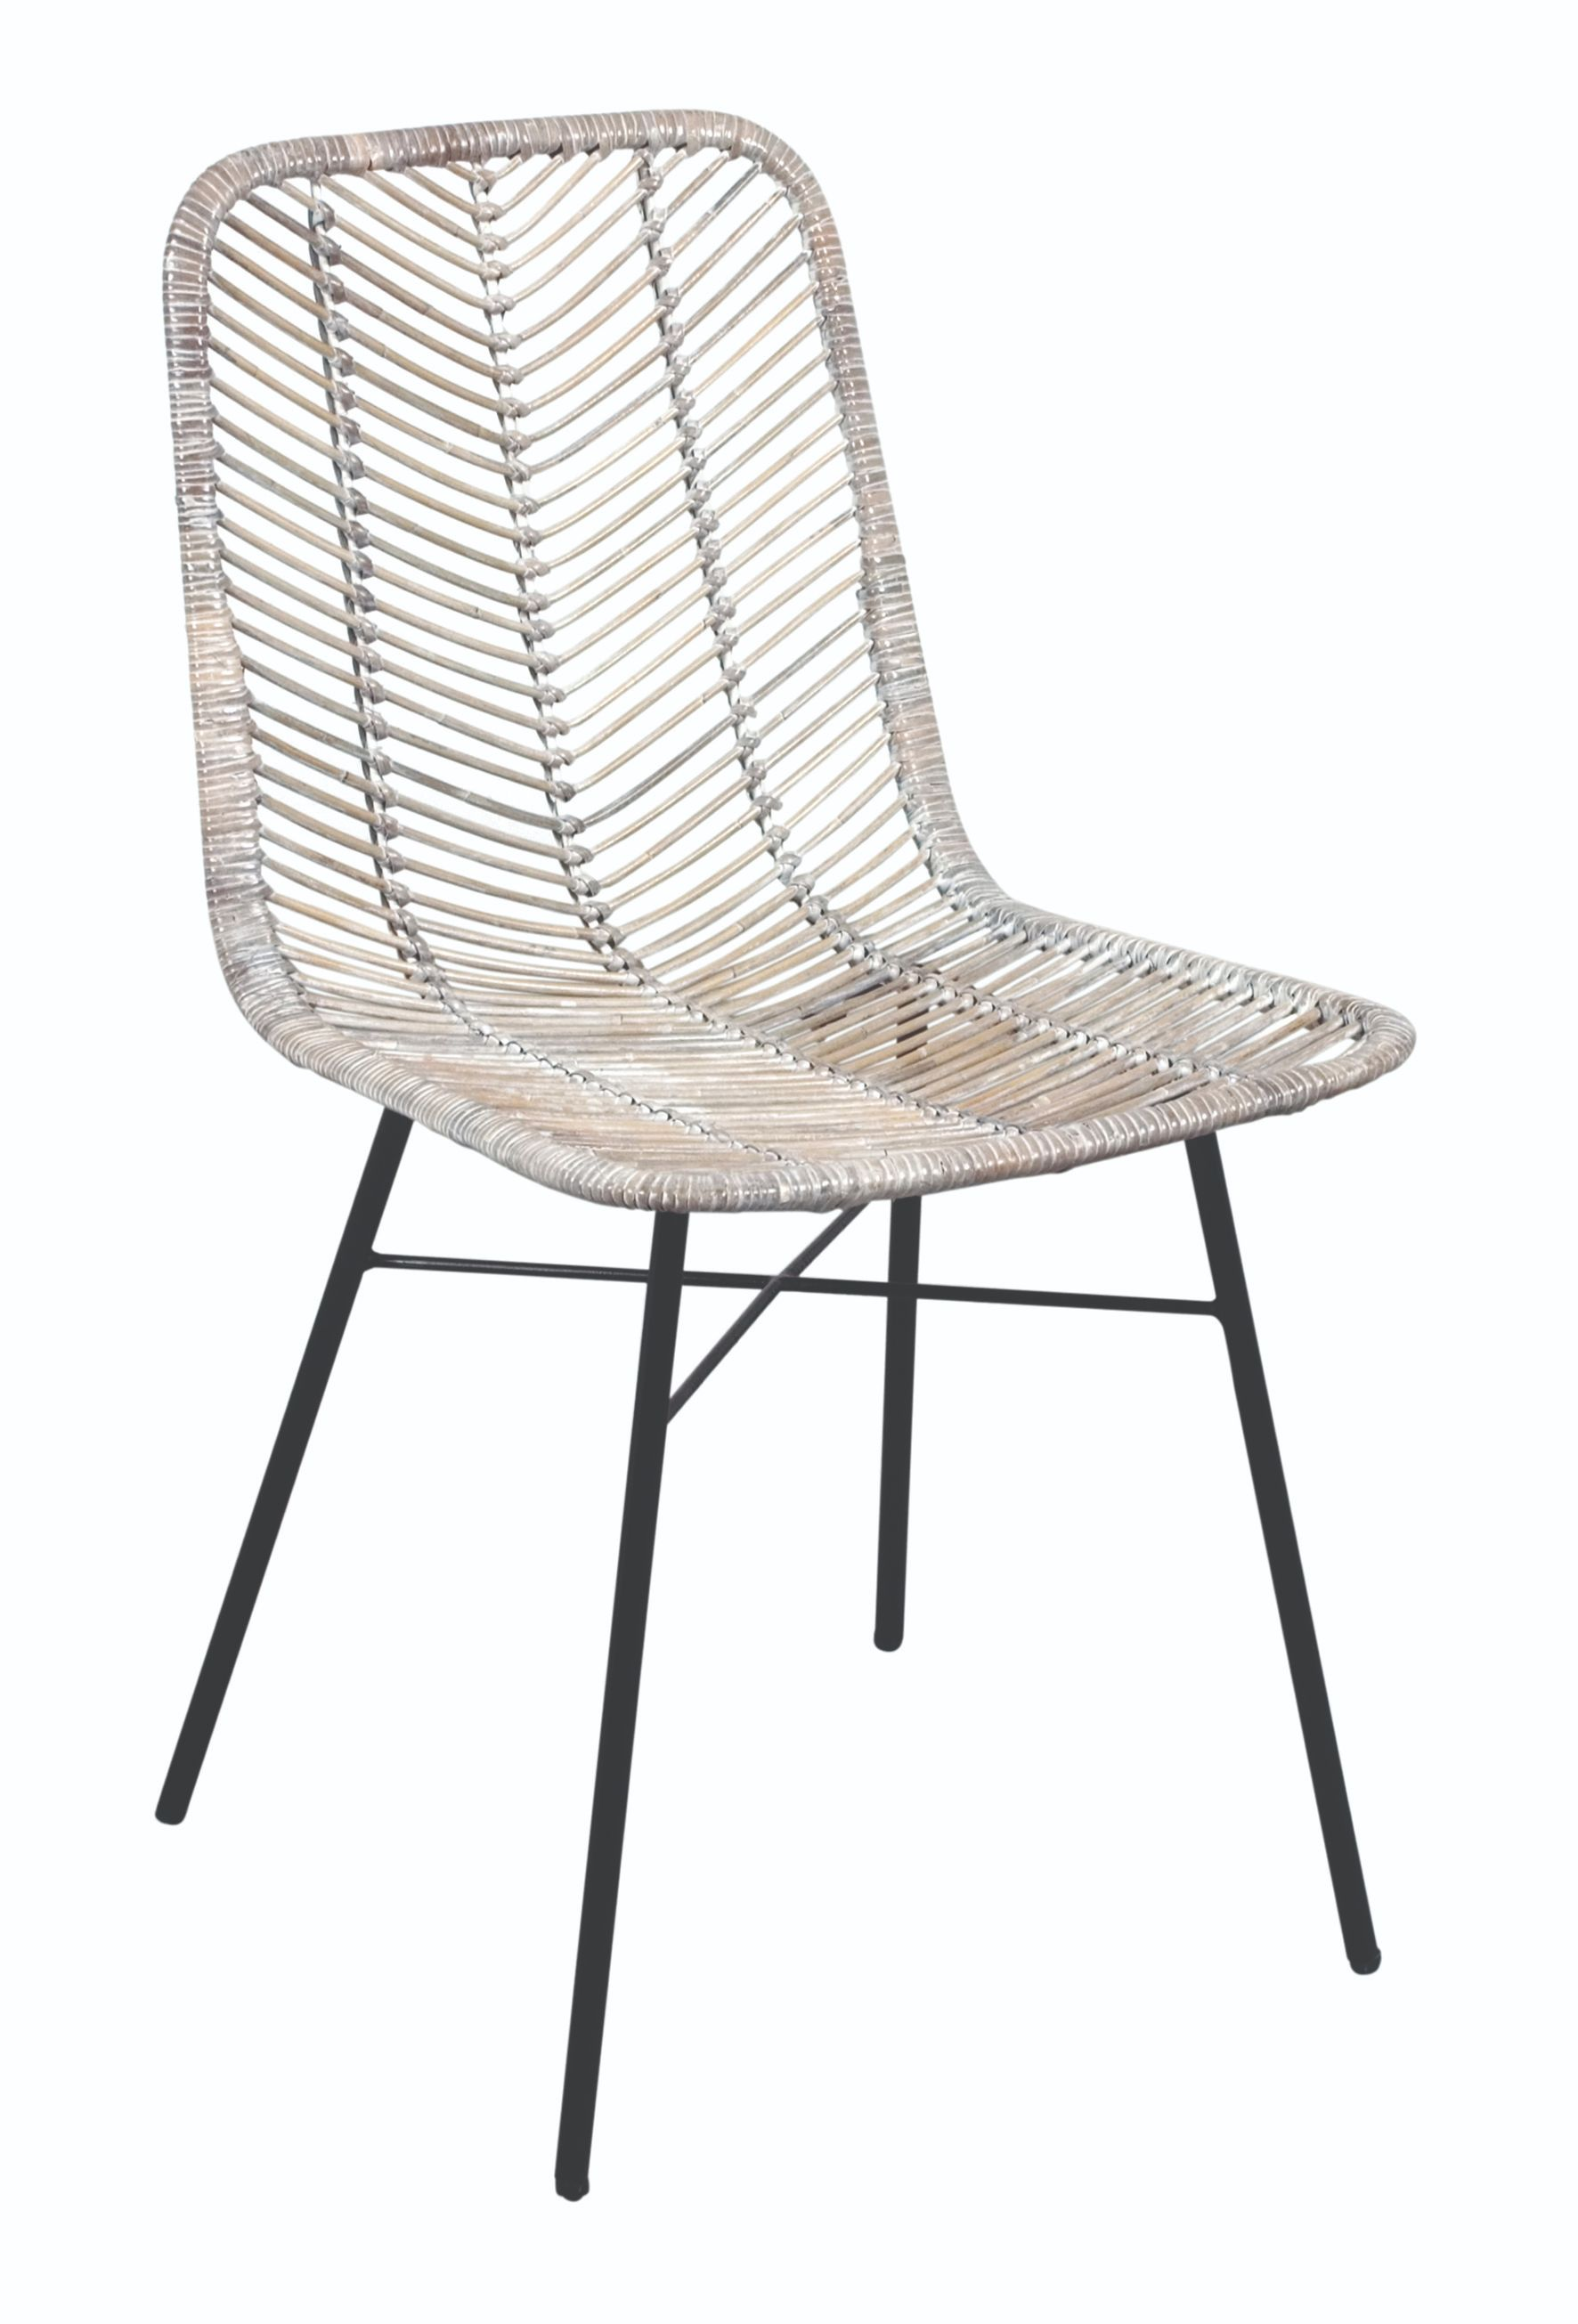 MAYA CHAIR White Wash Rattan